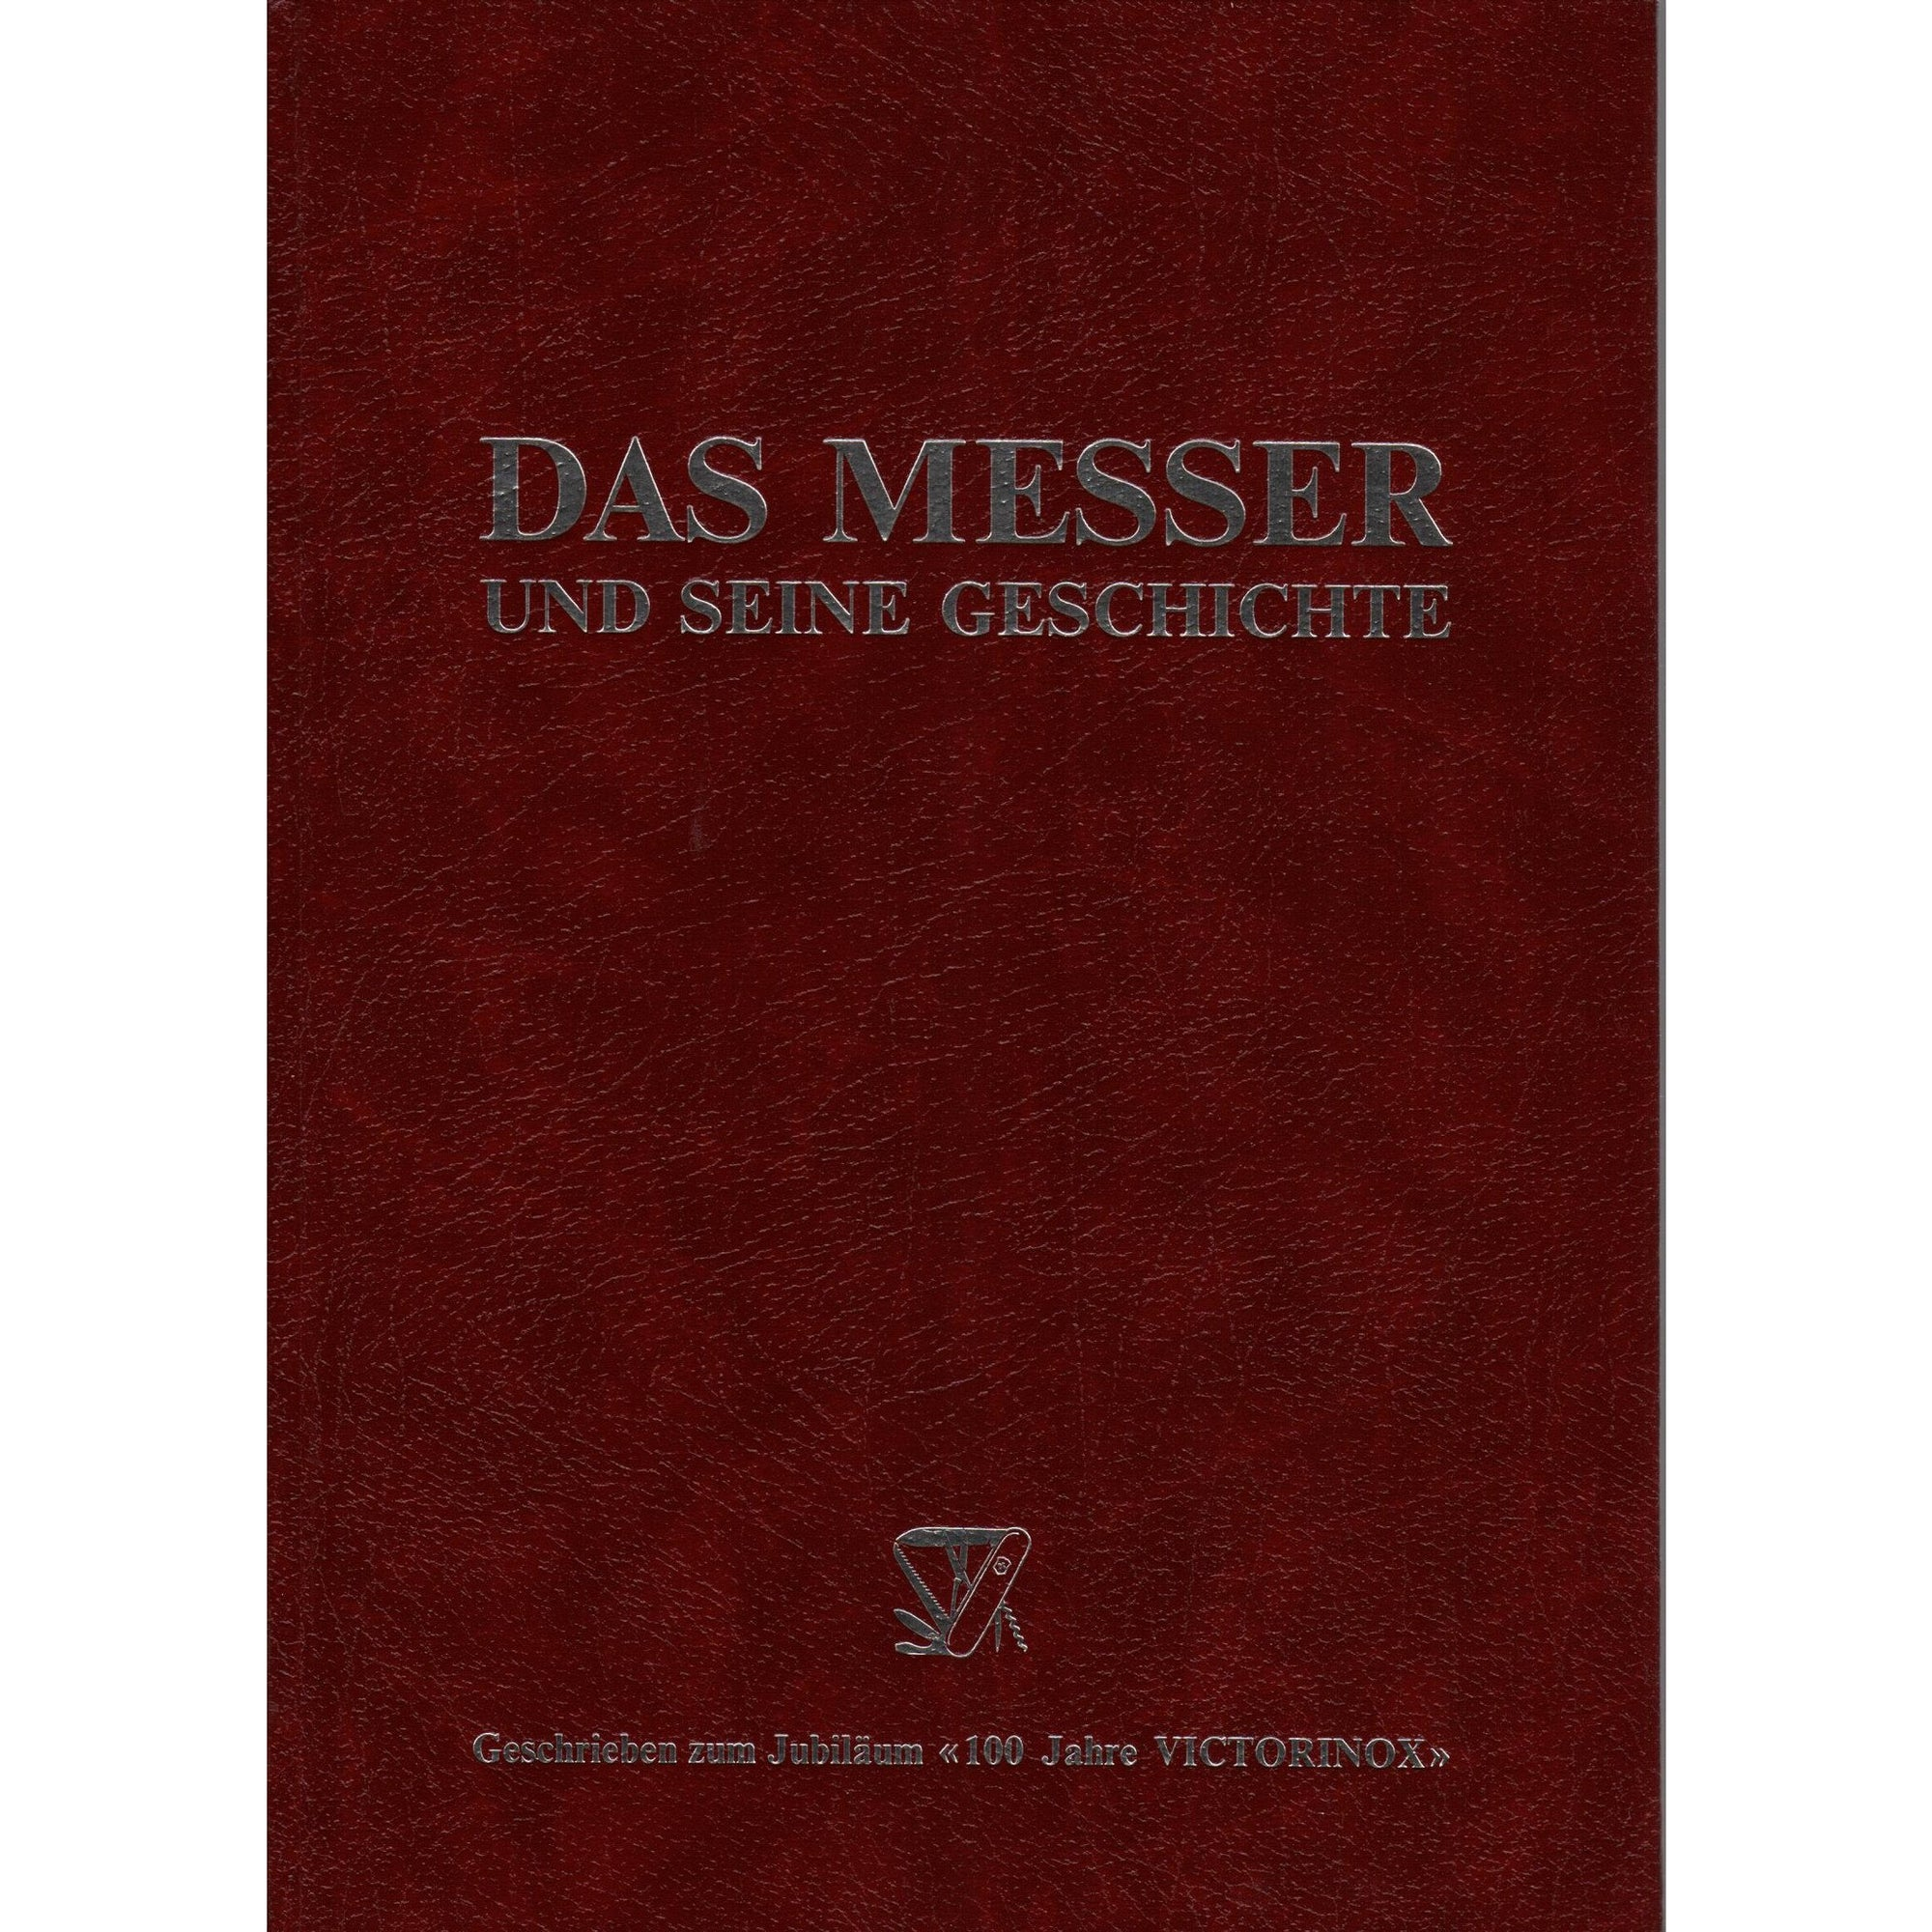 Das Messer.  The History 100 Year History of Victorian Knives in German.,Used Books- Canada Brass